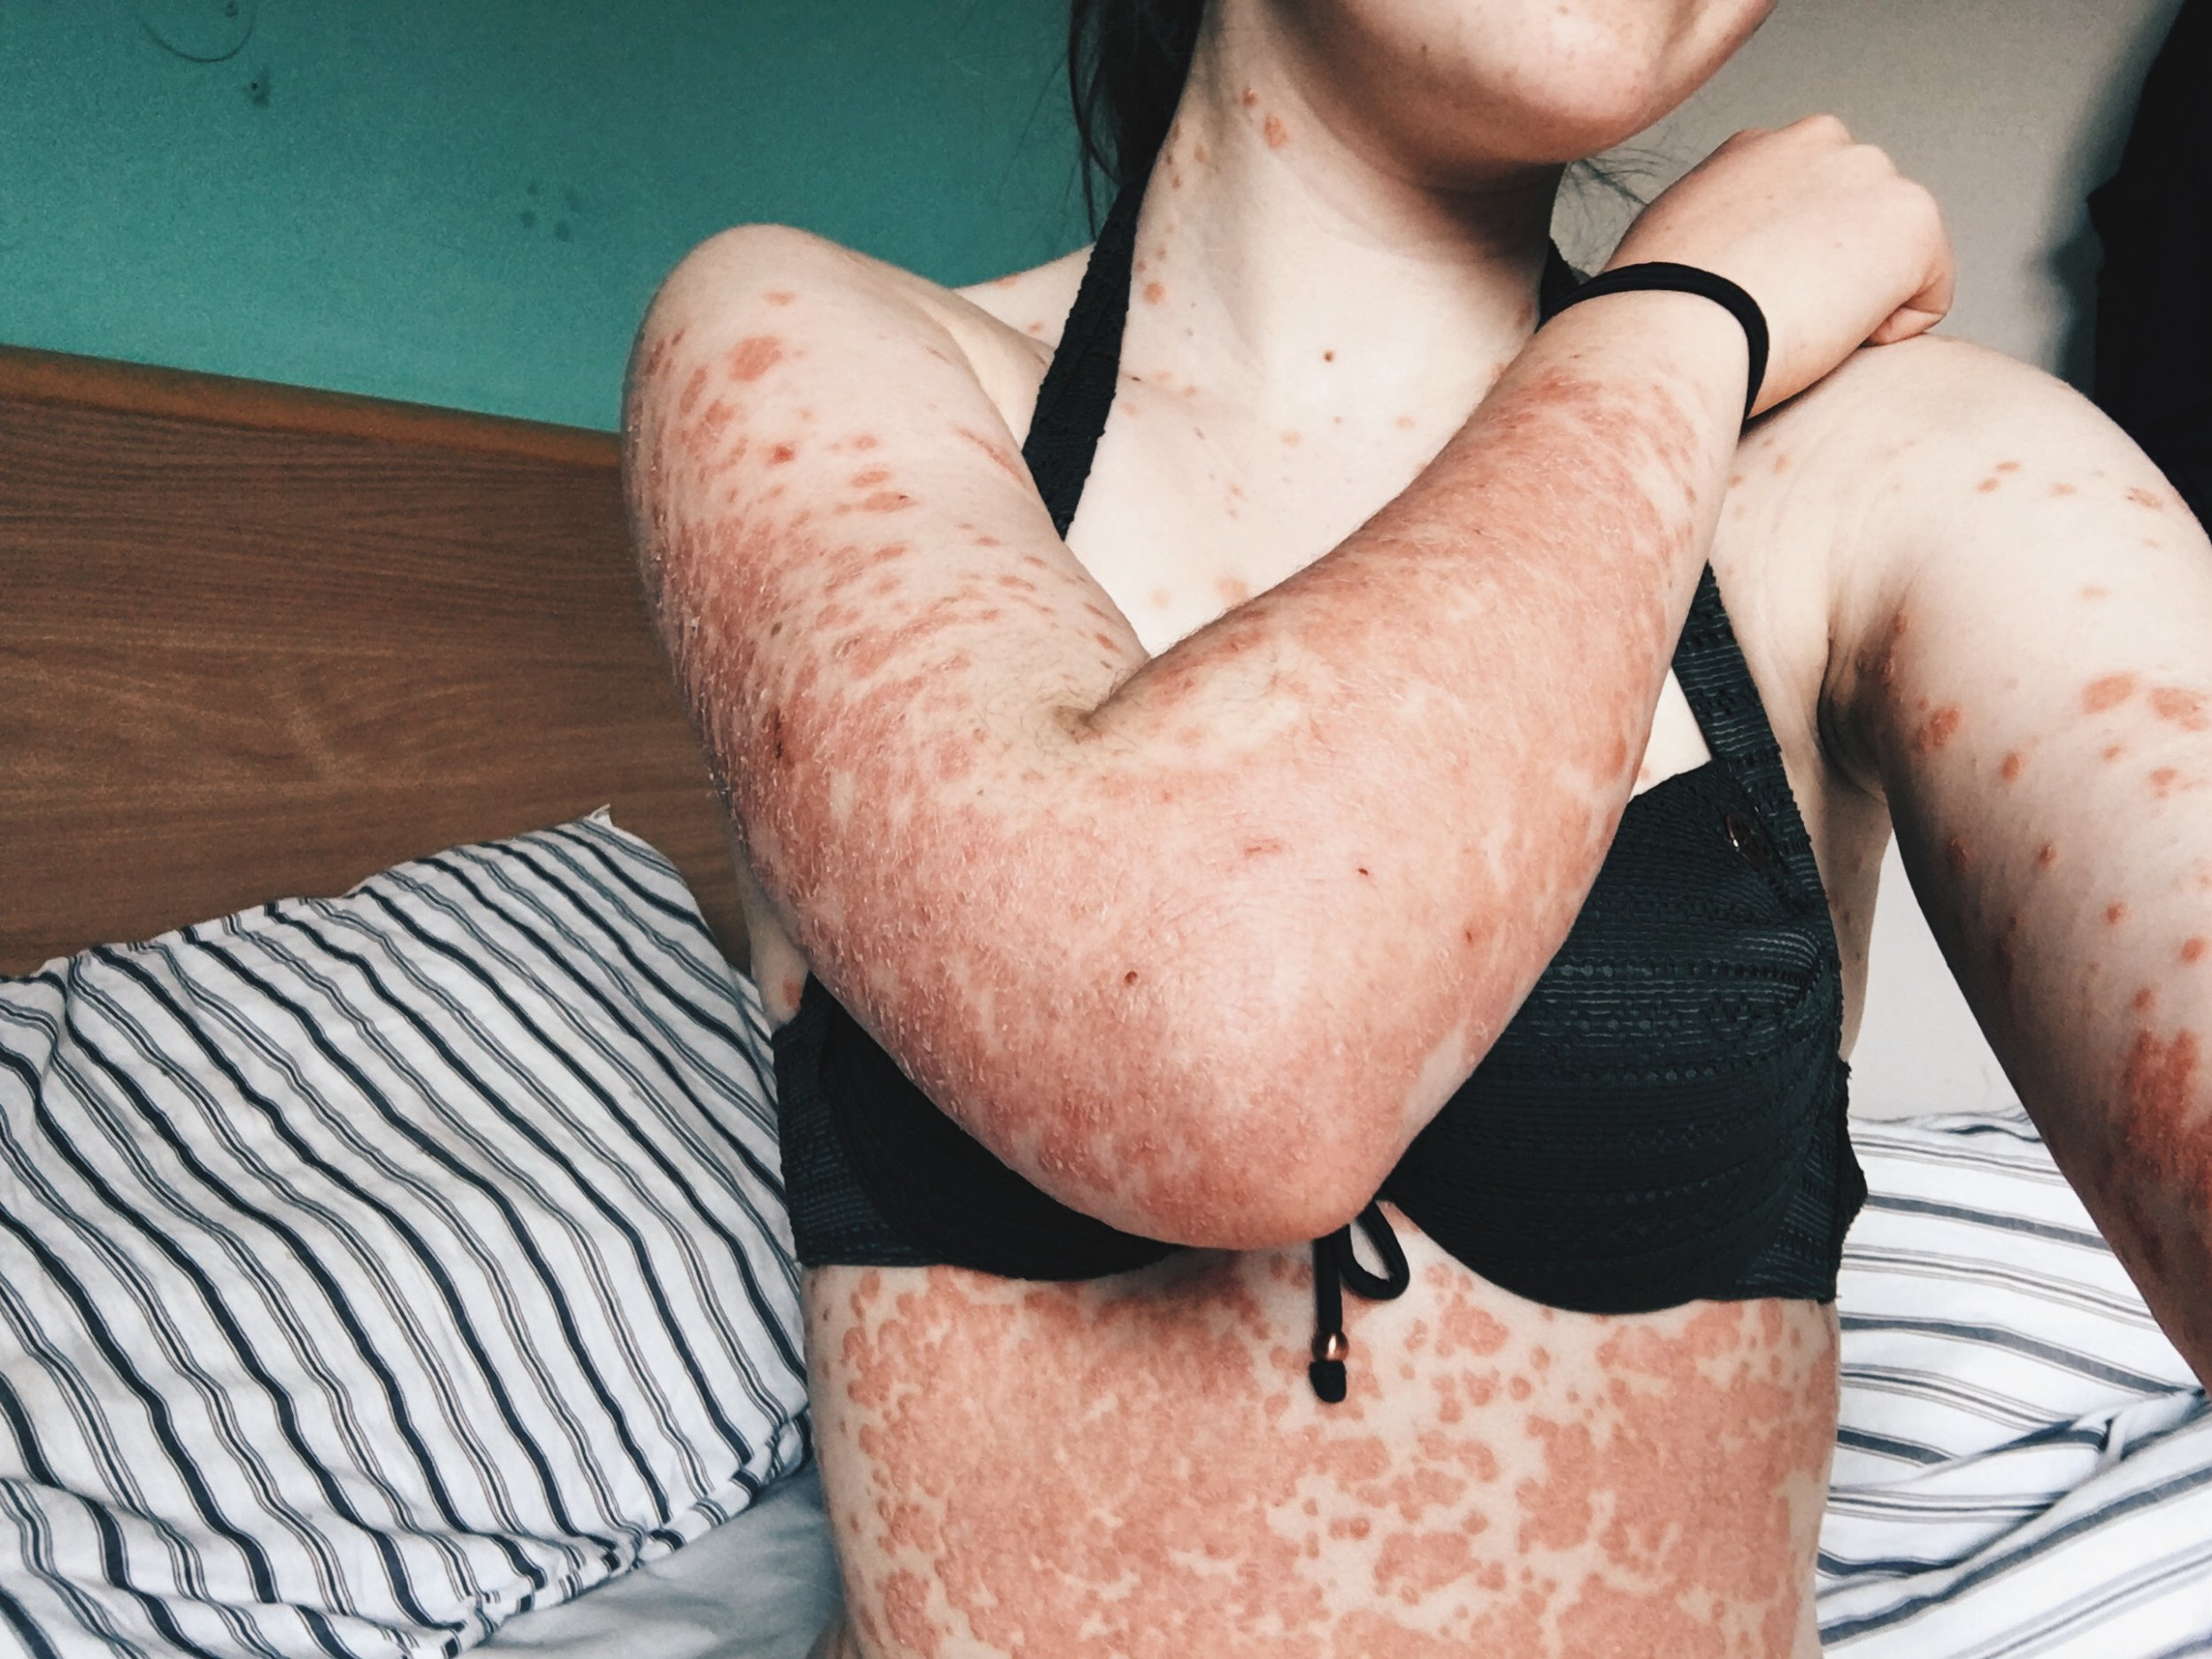 ELLASTONE, STAFFORDSHIRE, UNITED KINGDOM: Charlotte's psoriasis on her arms and body. THIS BRITISH student has revealed how she embraced her painful psoriasis that made her feel like she was ???trapped in a shell??? and even caused her body to ???crack open and bleed??? when she stretched. Television student, Charlotte Agnew (19) from Ellastone, Staffordshire, first noticed red spots appearing on her skin not long after she moved to university. Spreading across her body, Charlotte???s confidence started to diminish as people would stare in shock and confusion at her angry skin which would crack and bleed. However, Charlotte has now embraced her psoriasis, and is confident to walk down the street with her arms and legs on show and enjoys going to the beach and doesn???t flinch at wearing a swimsuit. When first diagnosed with psoriasis, Charlotte tried lots of different steroid creams and treatments which were tedious to apply and didn???t help but she has found that lifestyle changes have brought about the biggest improvement to her skin. Now at university in Cornwall, she enjoys swimming in the sea as she has found that the saltwater soothes her skin and being out in the sun has helped her spots fade. Charlotte Agnew / MDWfeatures